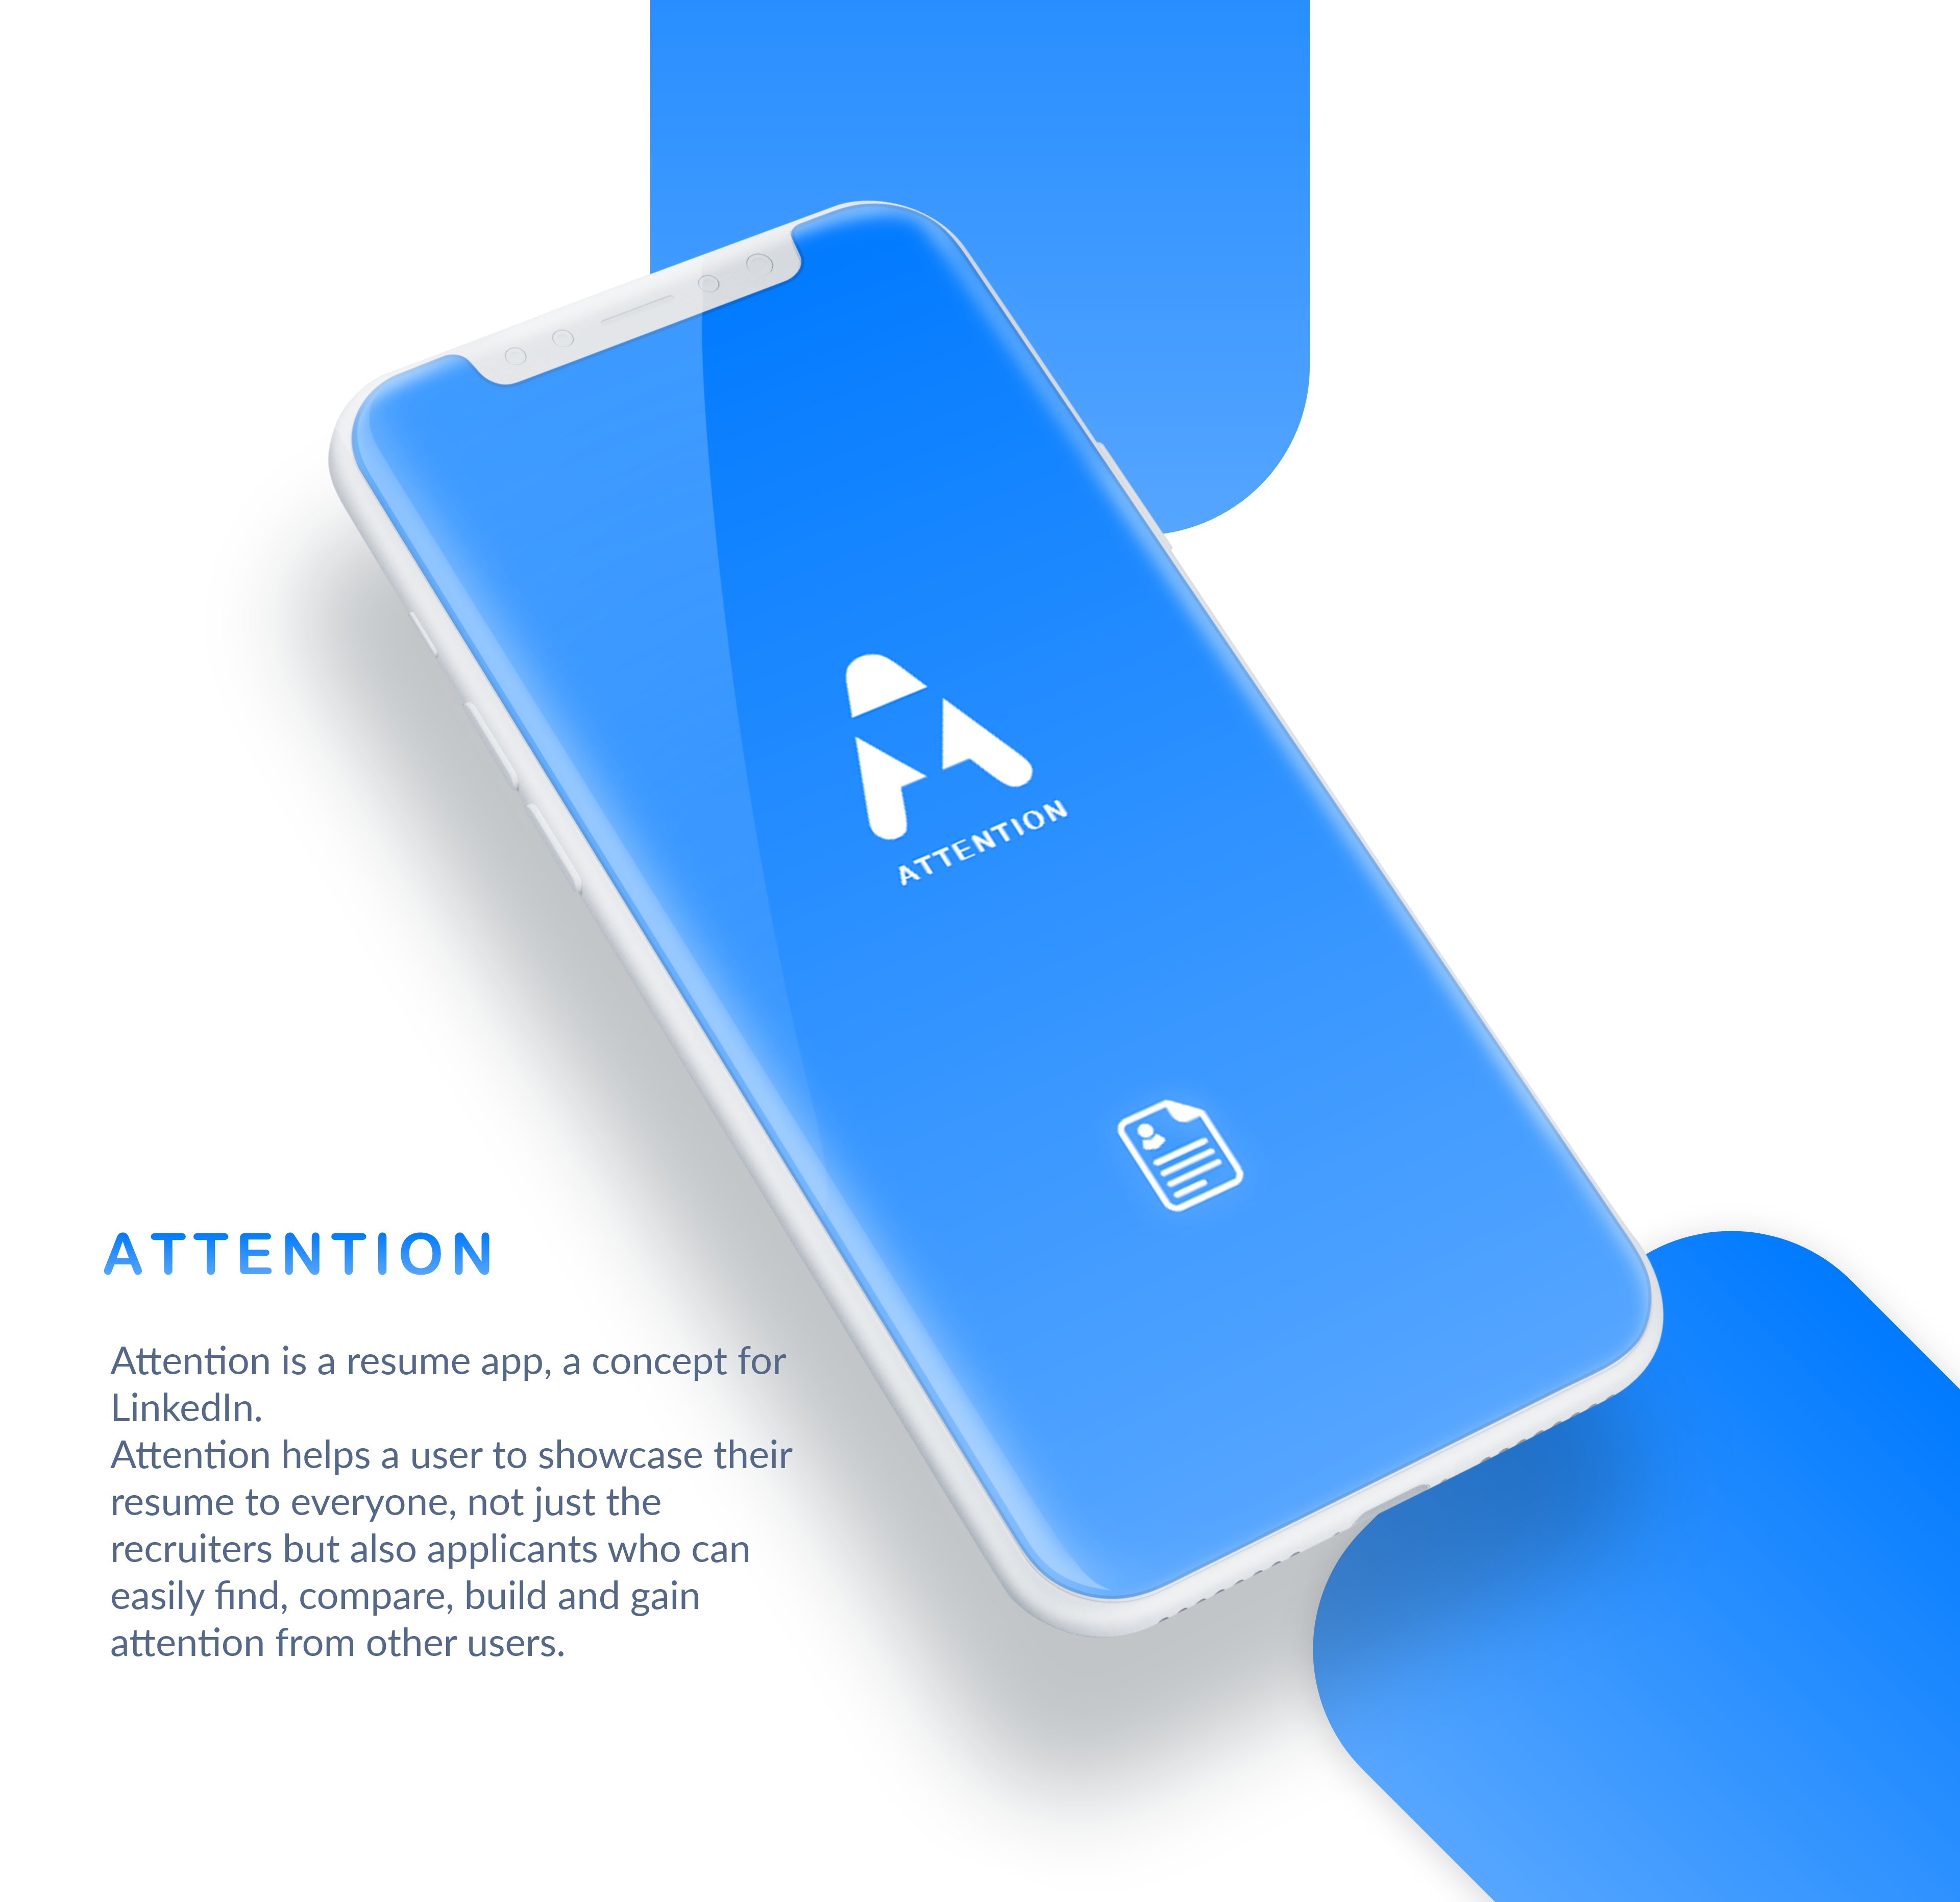 attention helps a user to showcase their resume to everyone not just recruiter but also to another user who can easily find compare build and get - Resume App